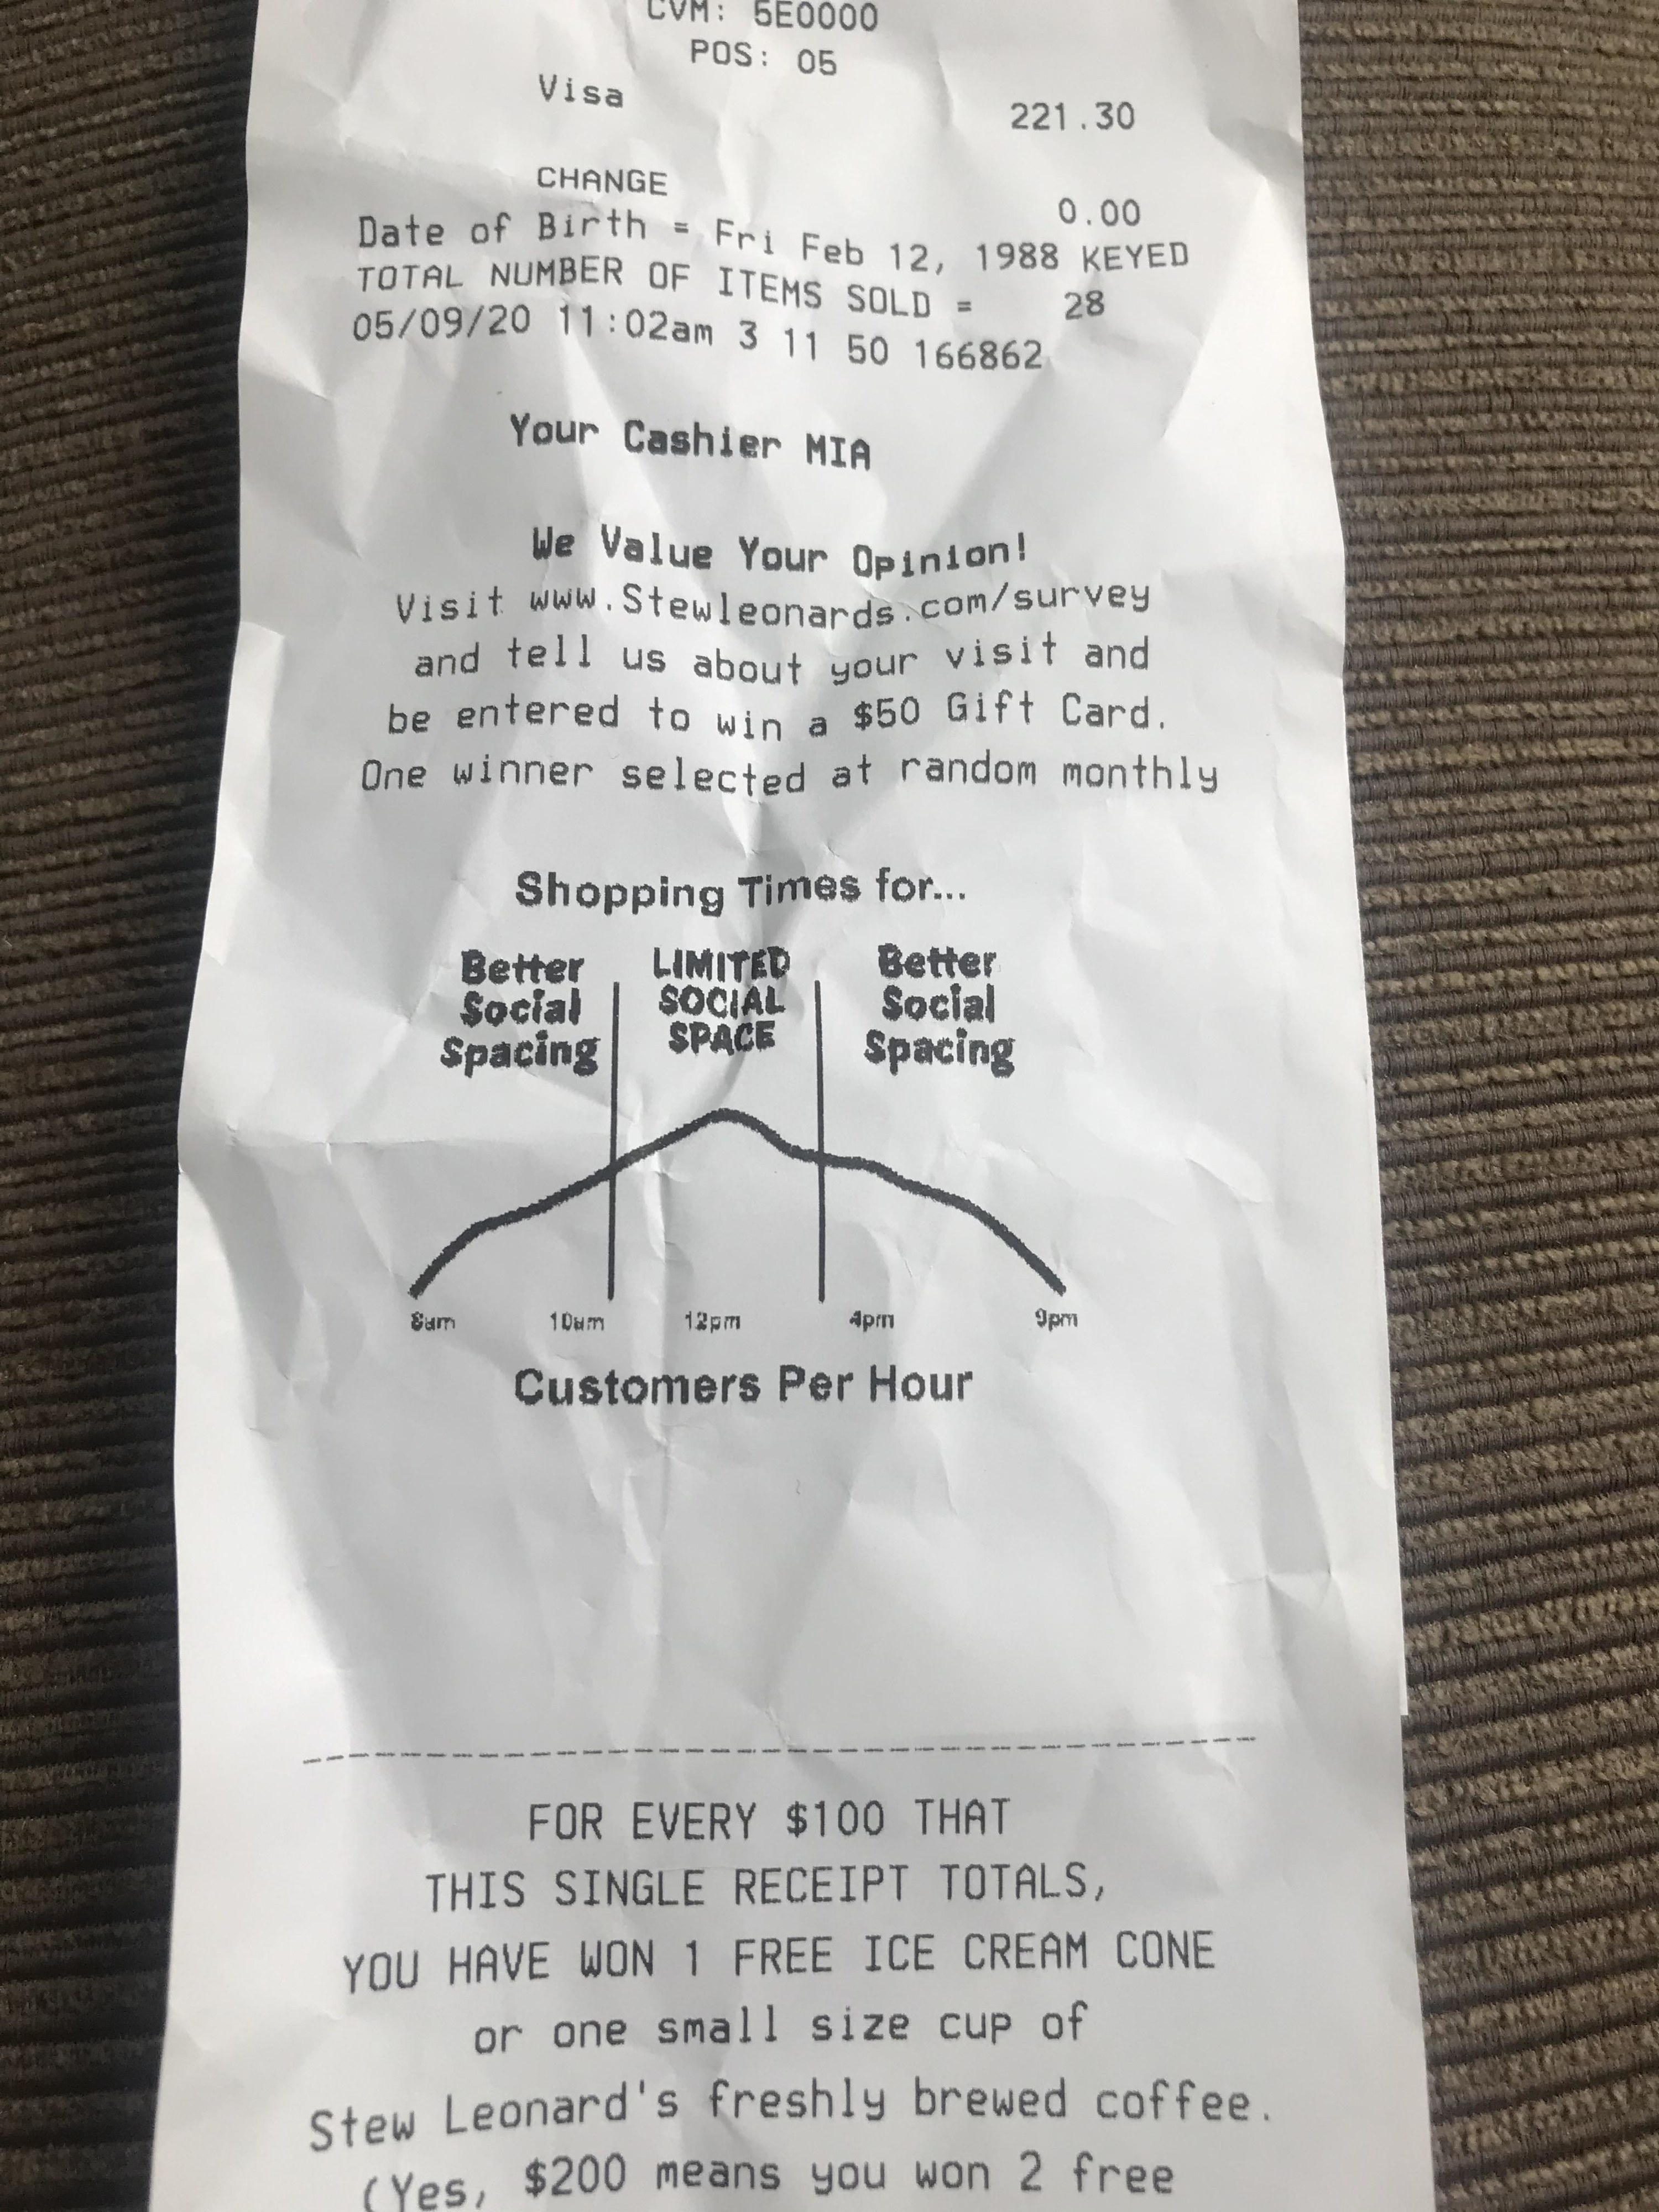 A grocery store receipt with a graph showing peak hours